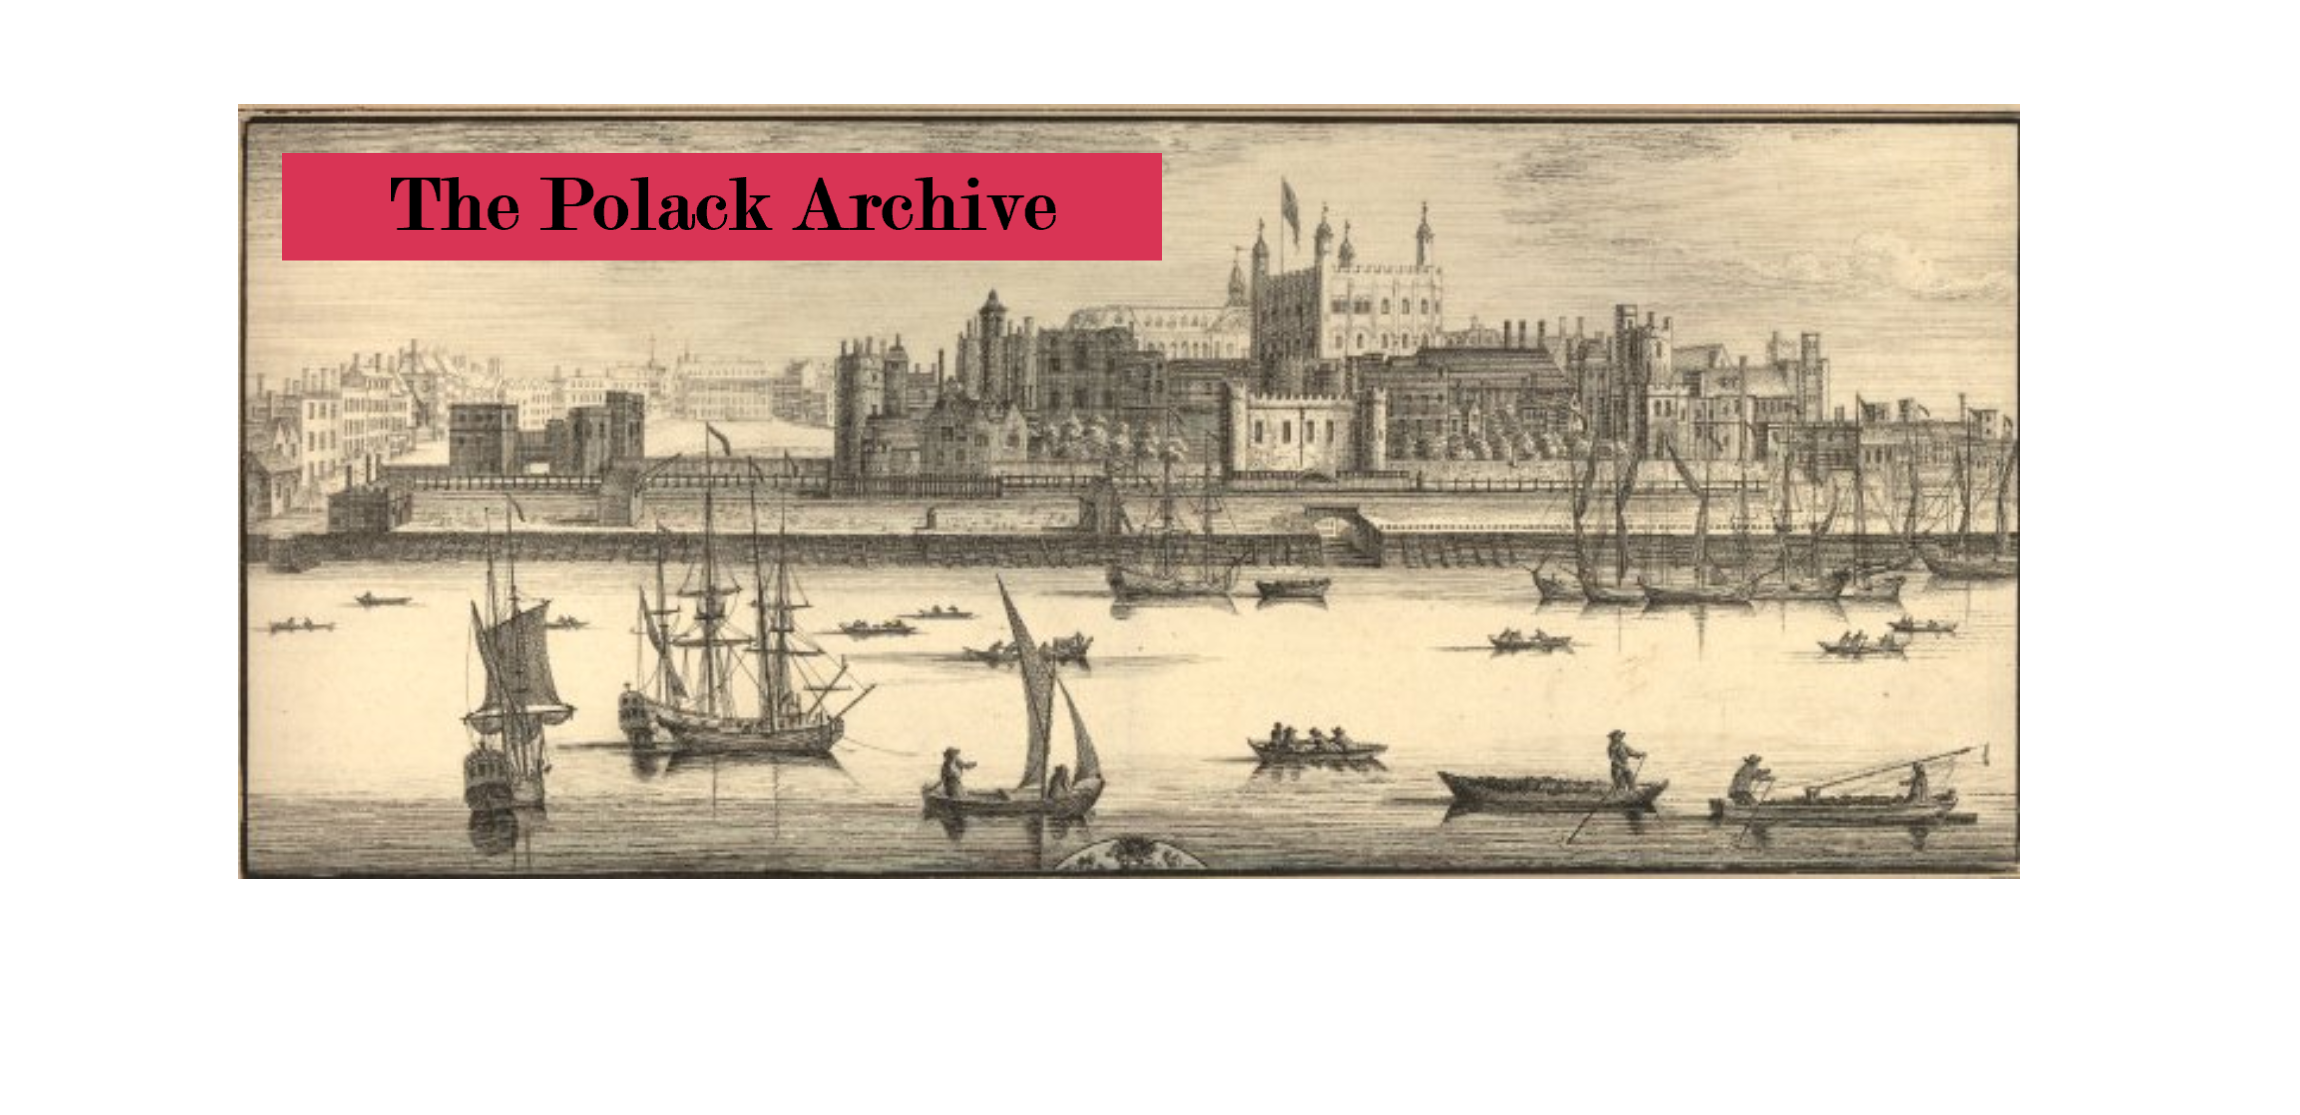 Maria Polack's Fiction Without Romance (1830): The Archive Edition